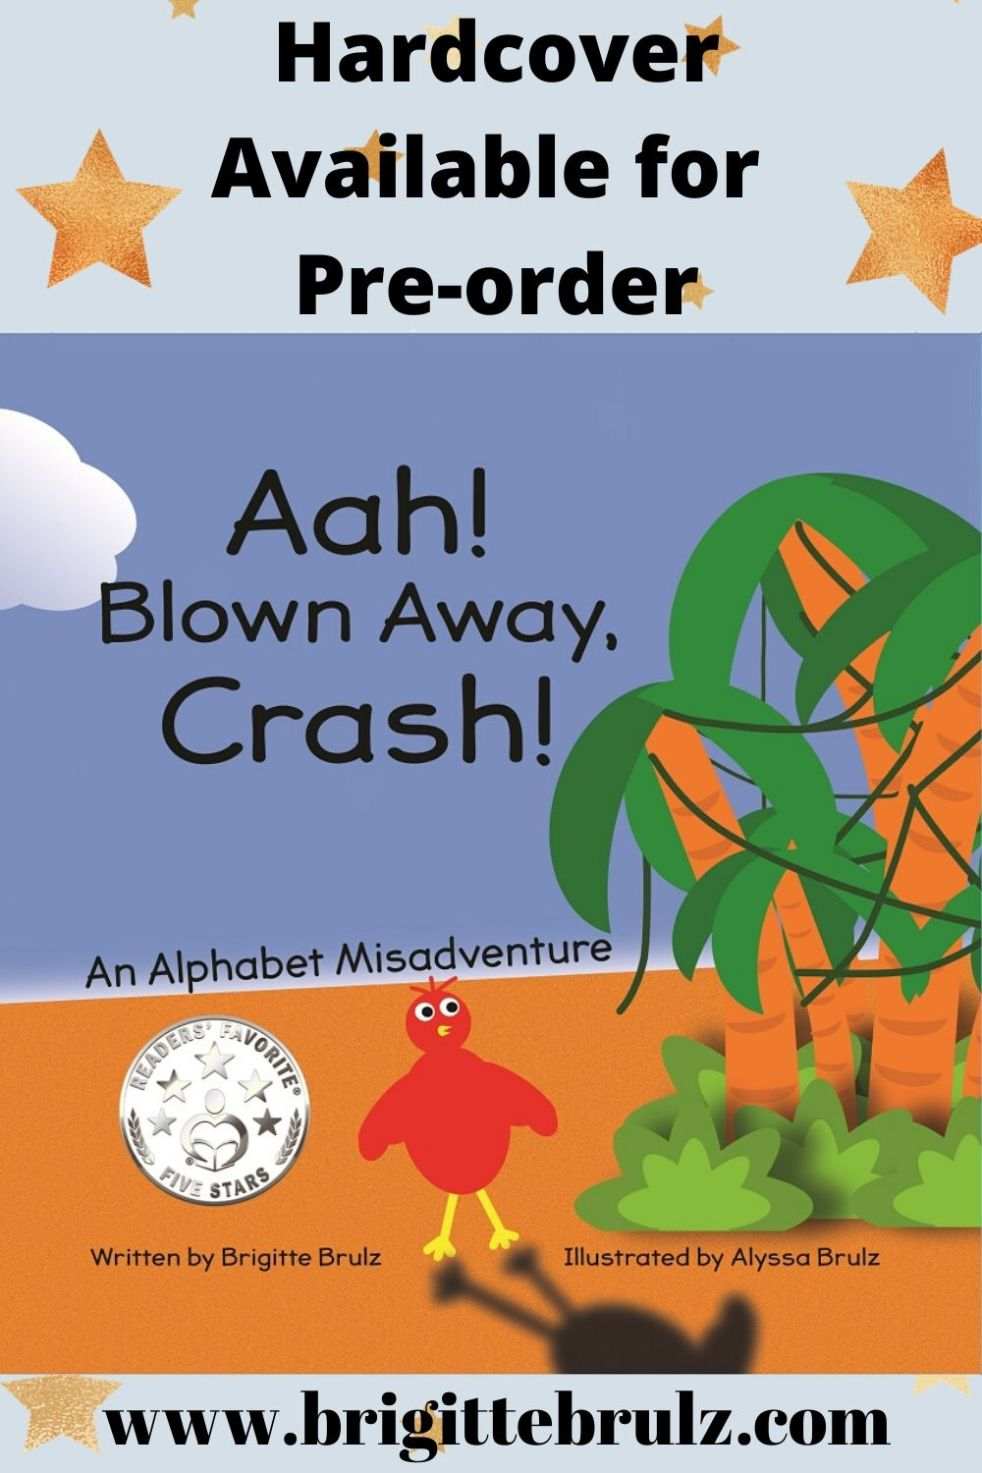 Aah! Blown Away, Crash! Available for Pre-Order